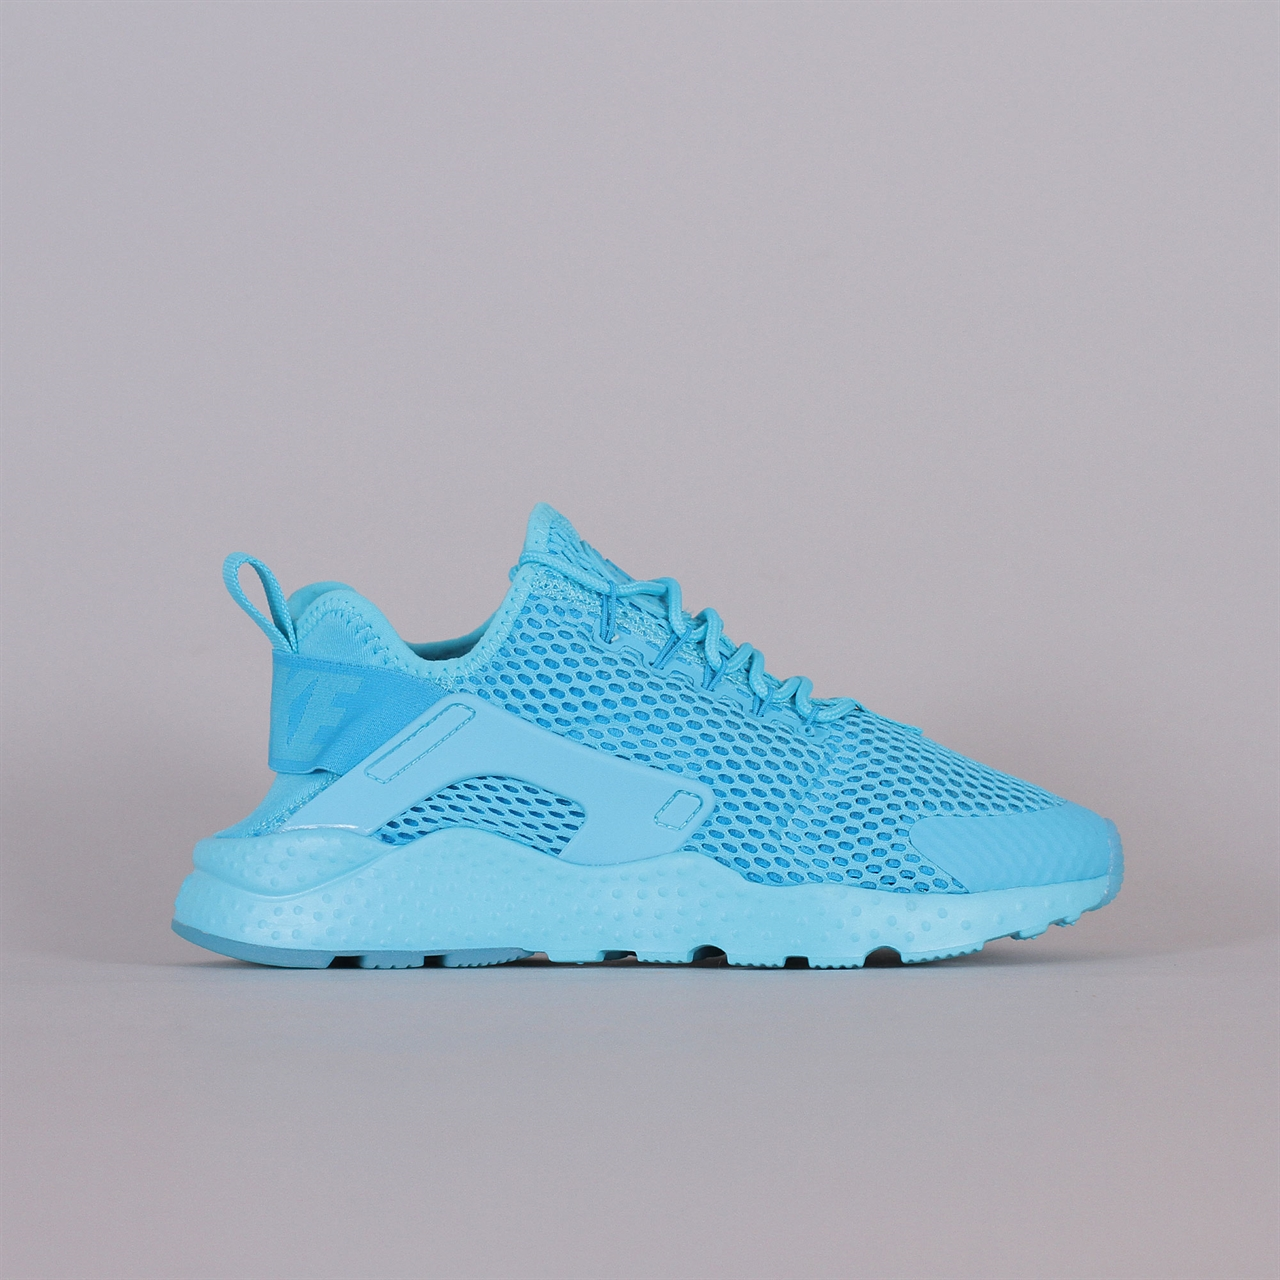 Shelta - Nike Sportswear Womens Air Huarache Run Ultra Breeze ... 605e9ac7e96f